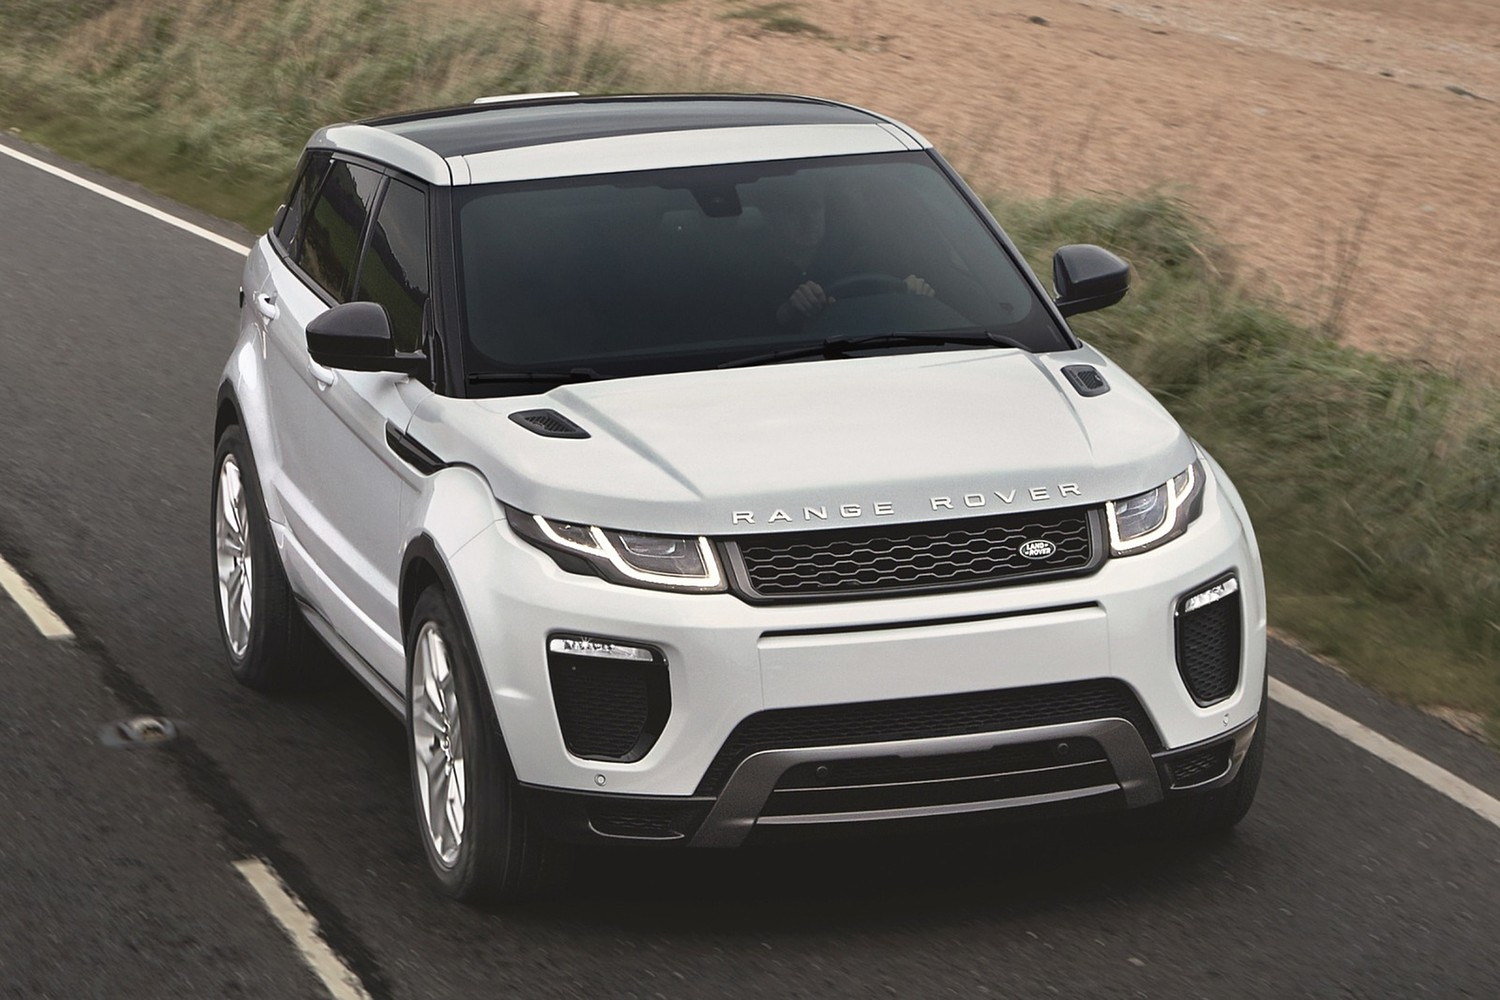 2016 Land Rover Range Rover Evoque HSE w/Dynamic Package 4dr SUV Exterior Shown